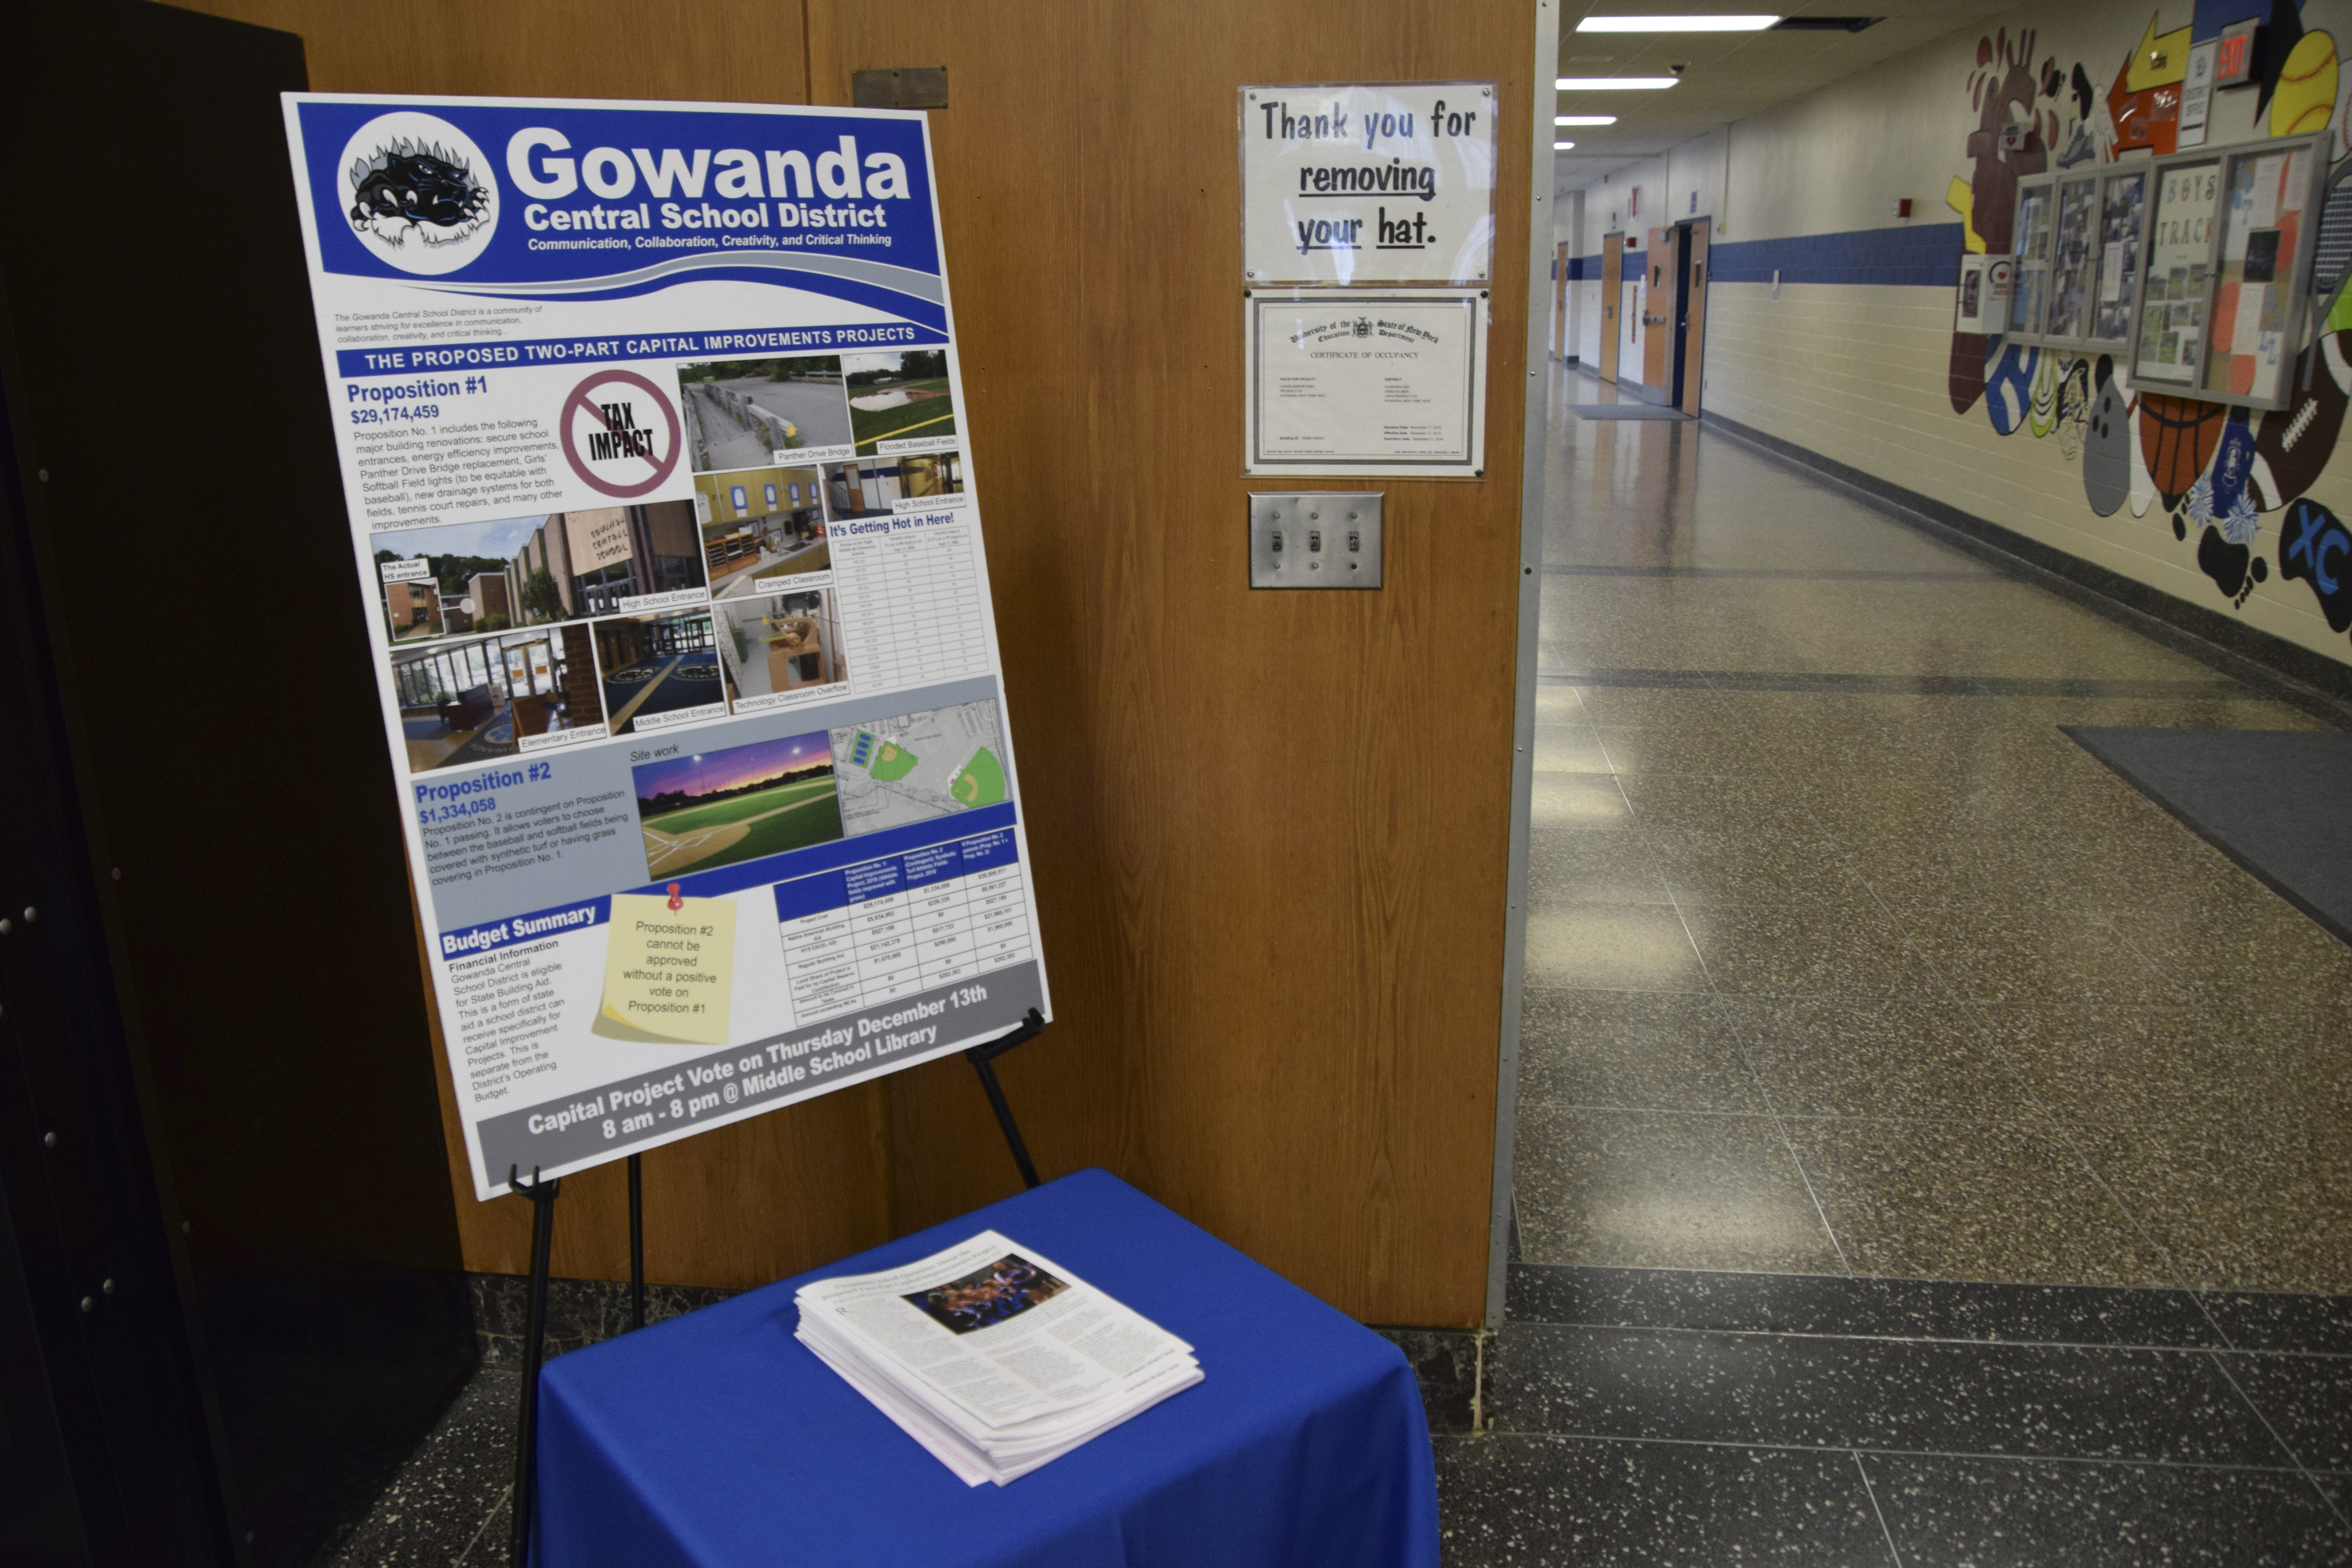 Gowanda School Residents Invited To Attend Public Hearing On Capital